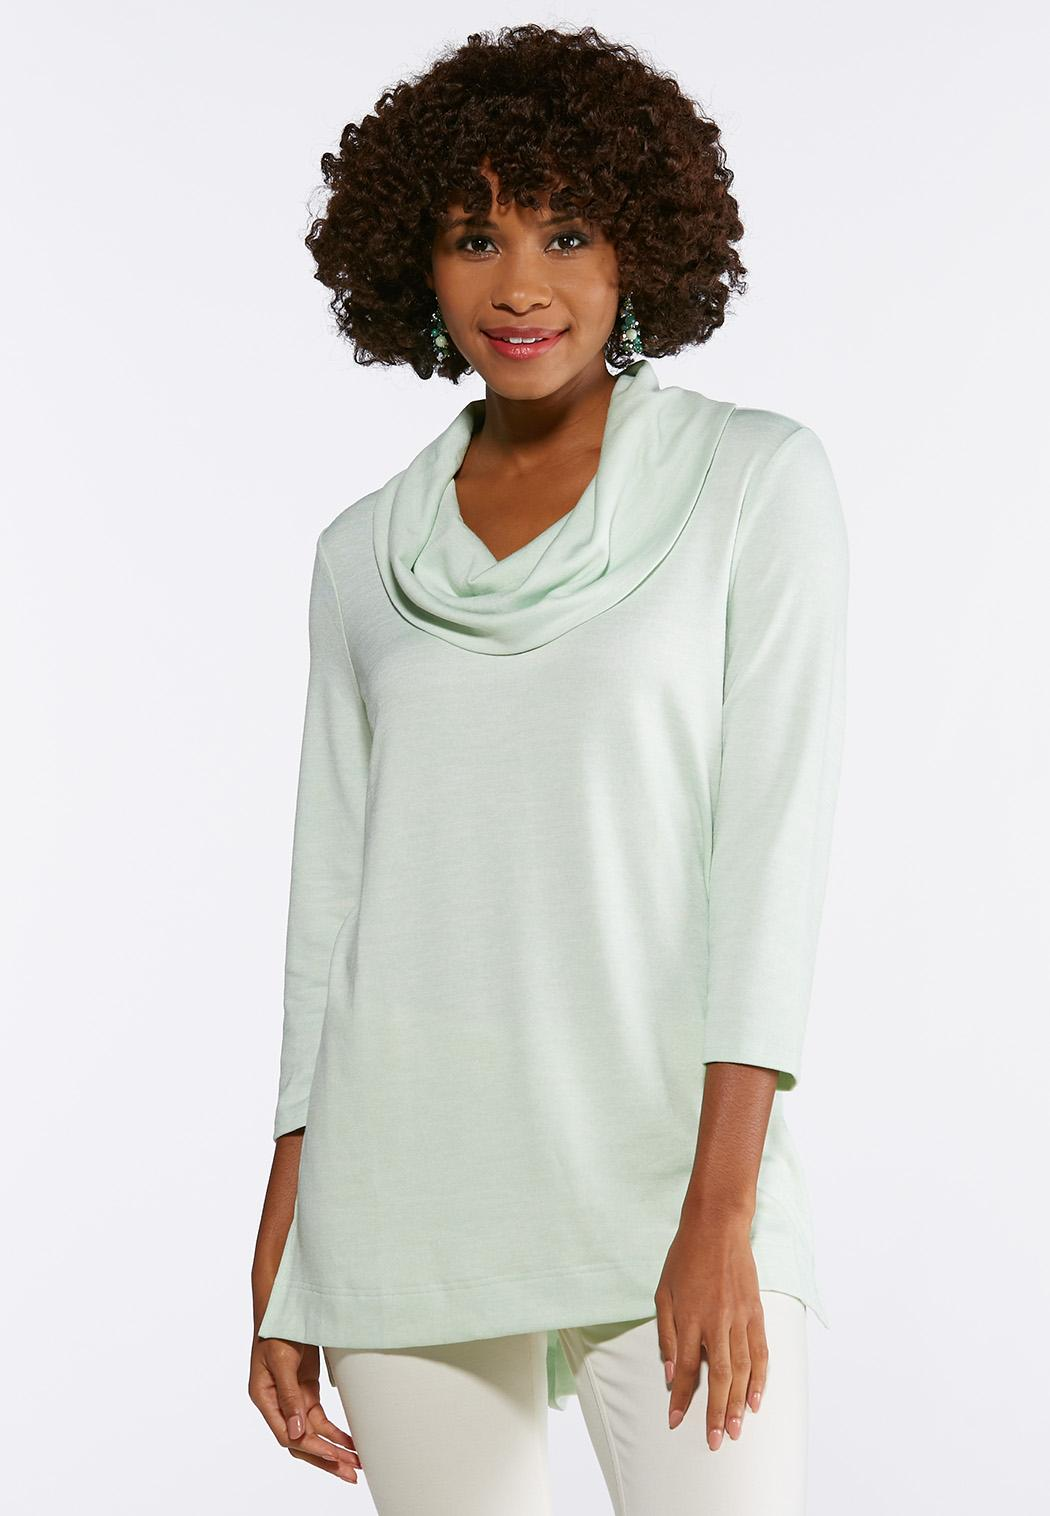 dca935c15 Solid Cowl Neck Tunic alternate view Solid Cowl Neck Tunic